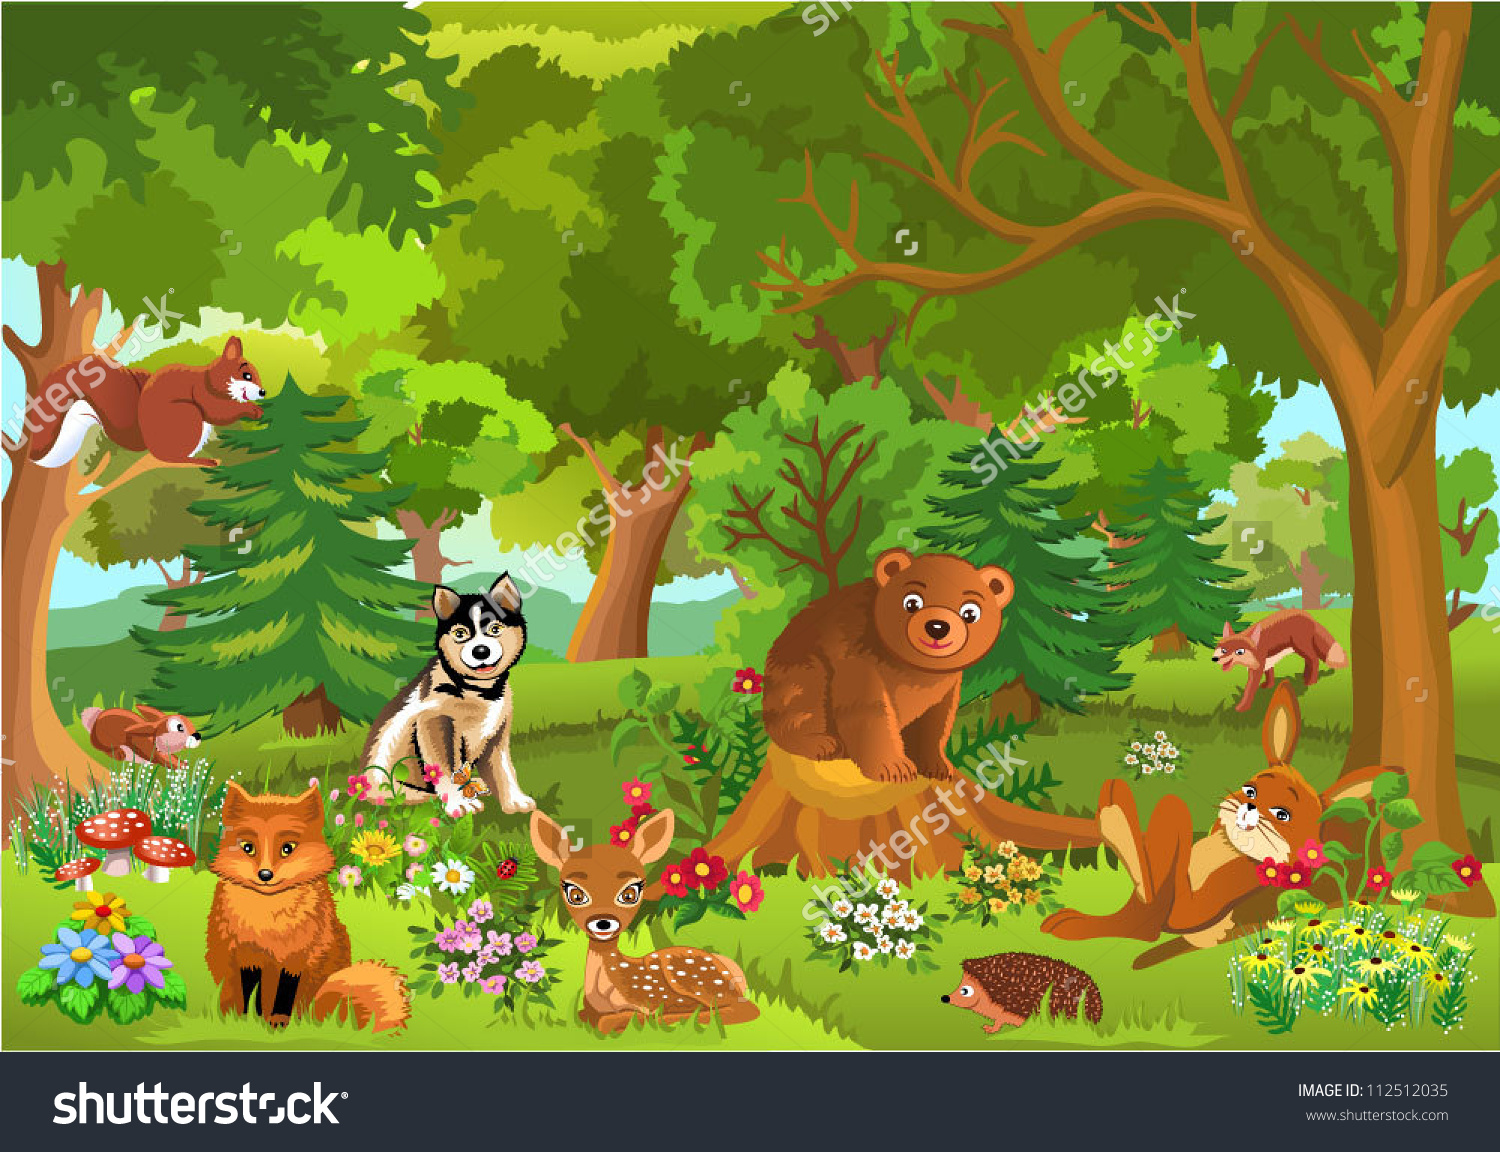 Cute Forest Clipart.